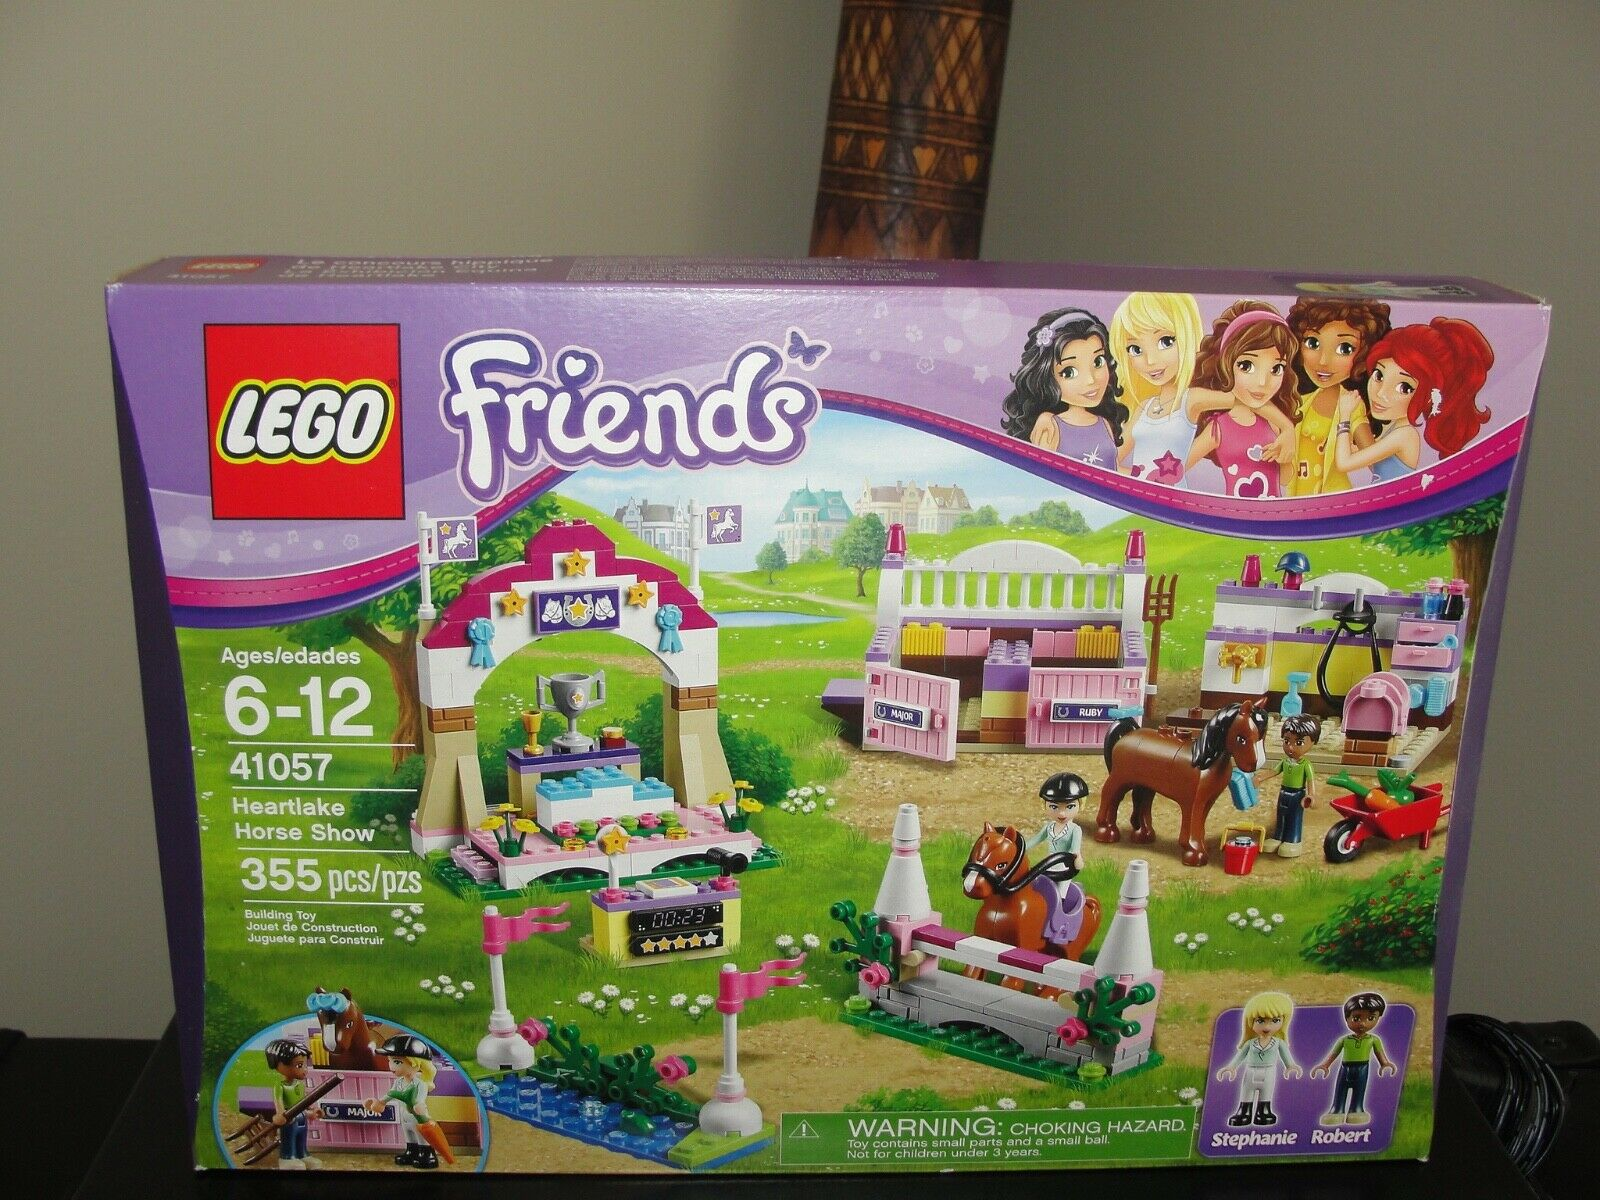 LEGO FRIENDS  HEARTLAND HORSE SHOW  NEW UNOPENED